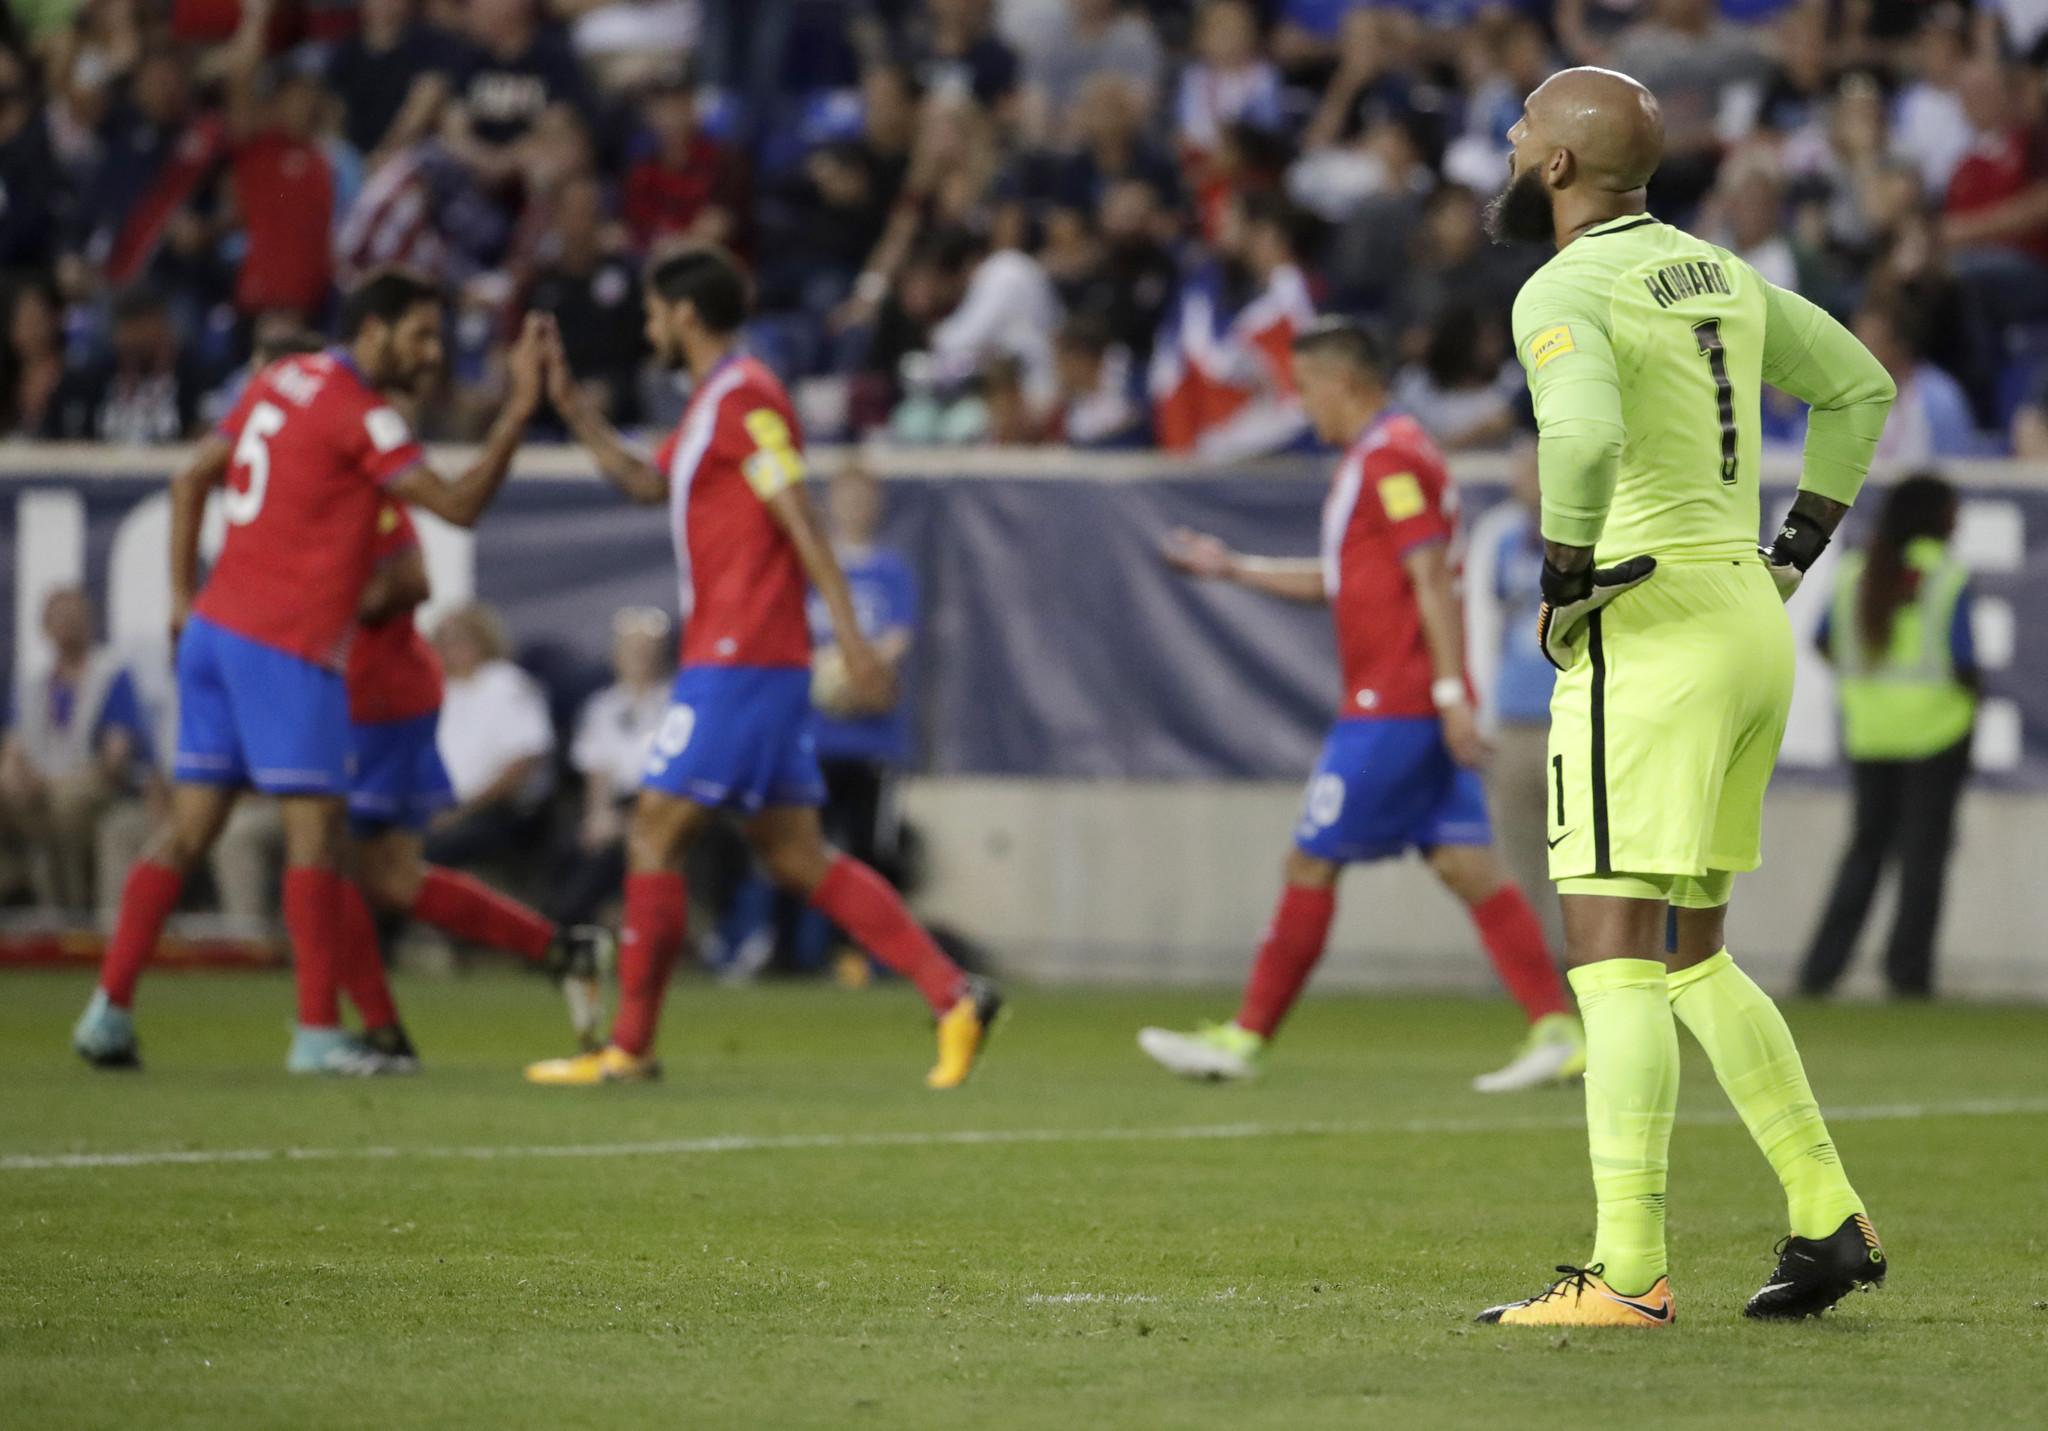 Backs Against the Wall: USA bordering on Crisis Mode after 2-0 Loss to Ticos